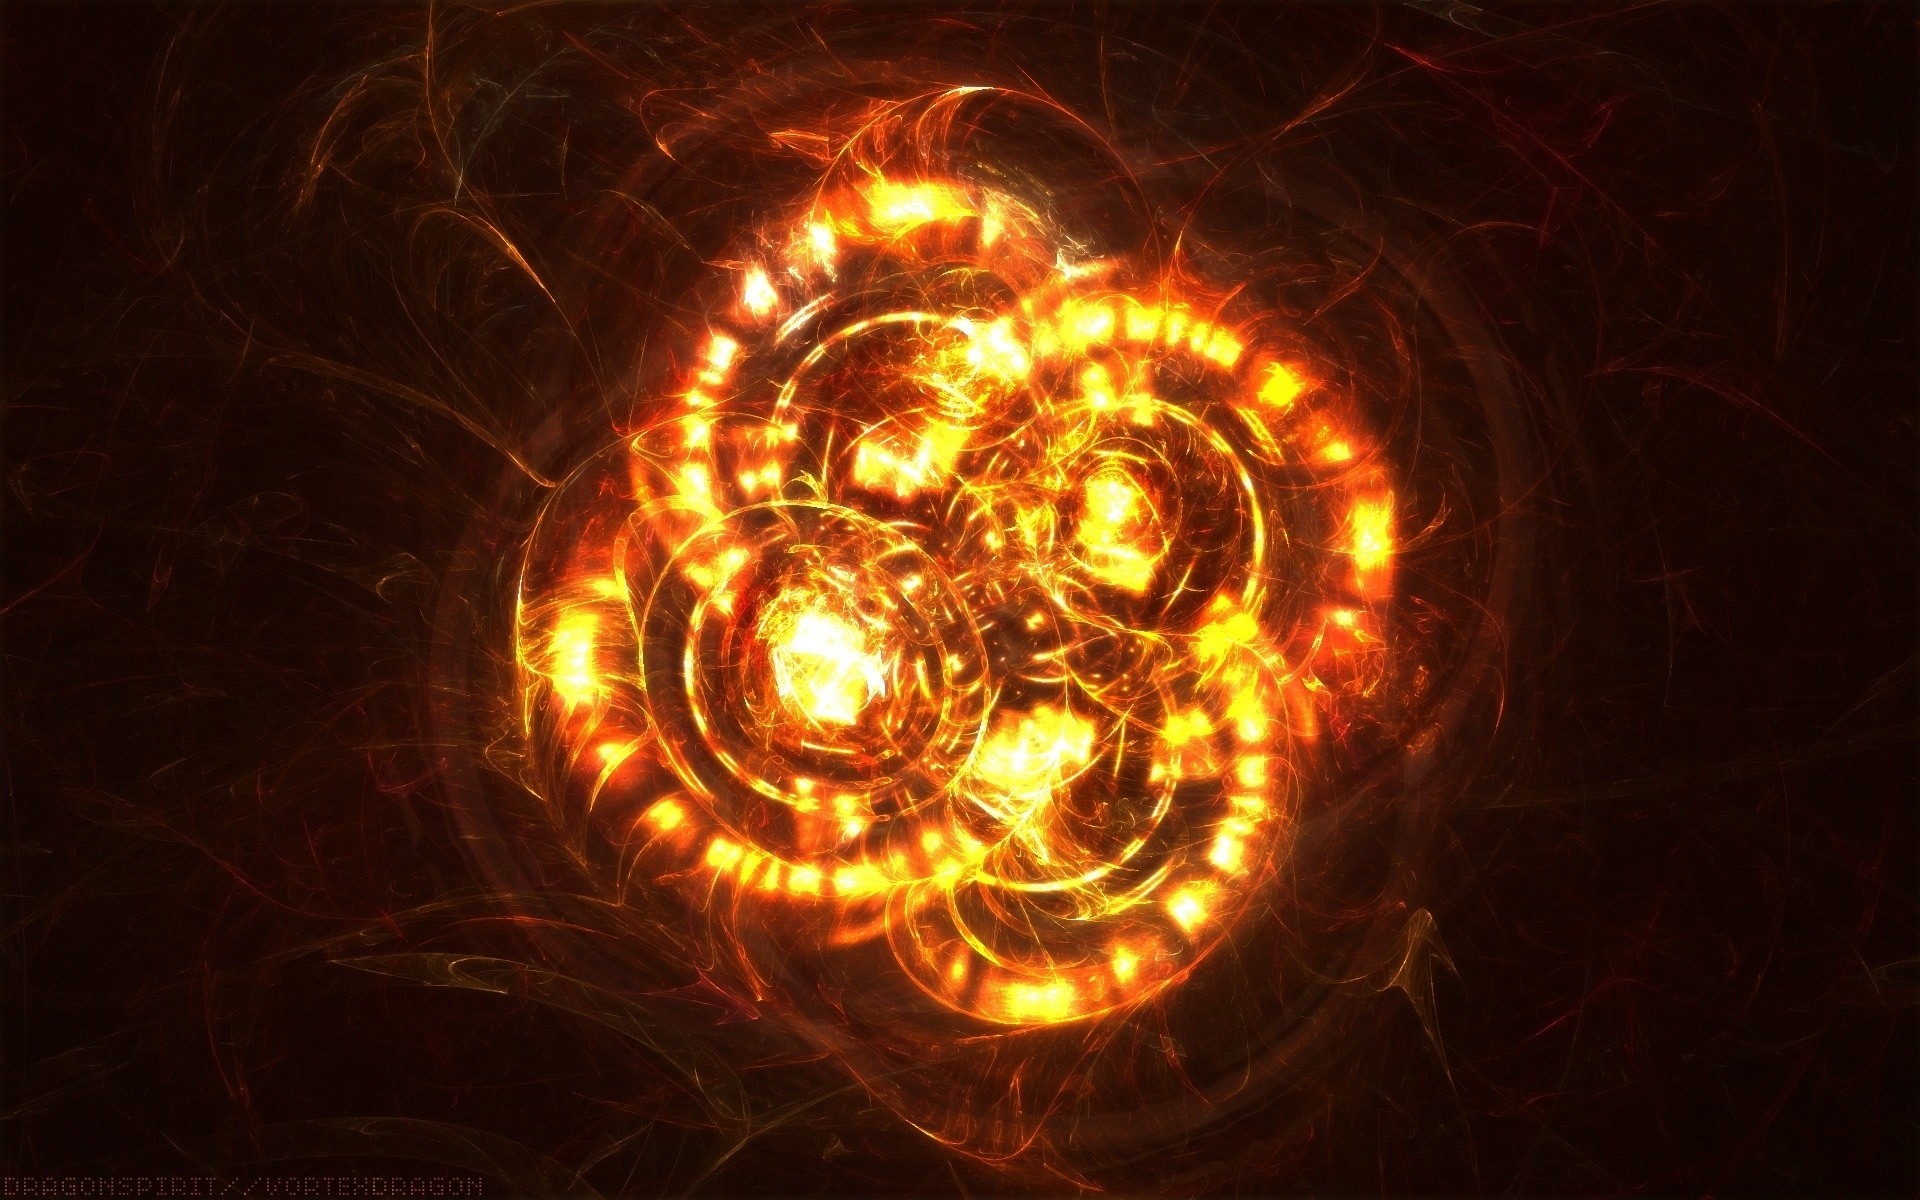 fire flame light abstract energy hot warmly smoke luminescence fantasy design heat fractal explosion shape burnt motion magic